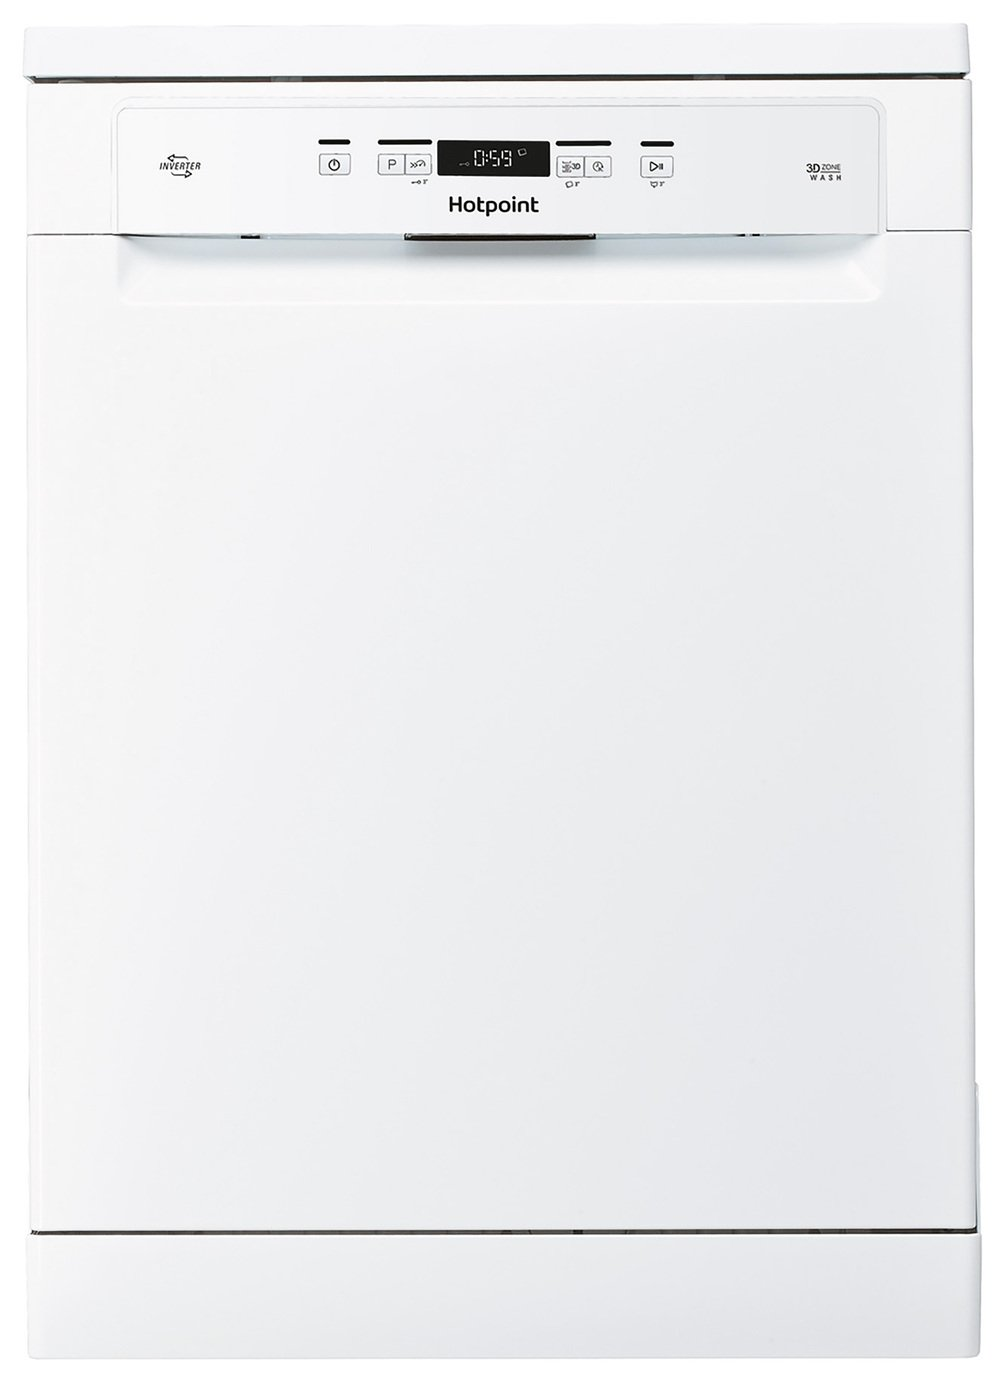 Hotpoint HFC3C26WUK Full Size Dishwasher - Stainless Steel